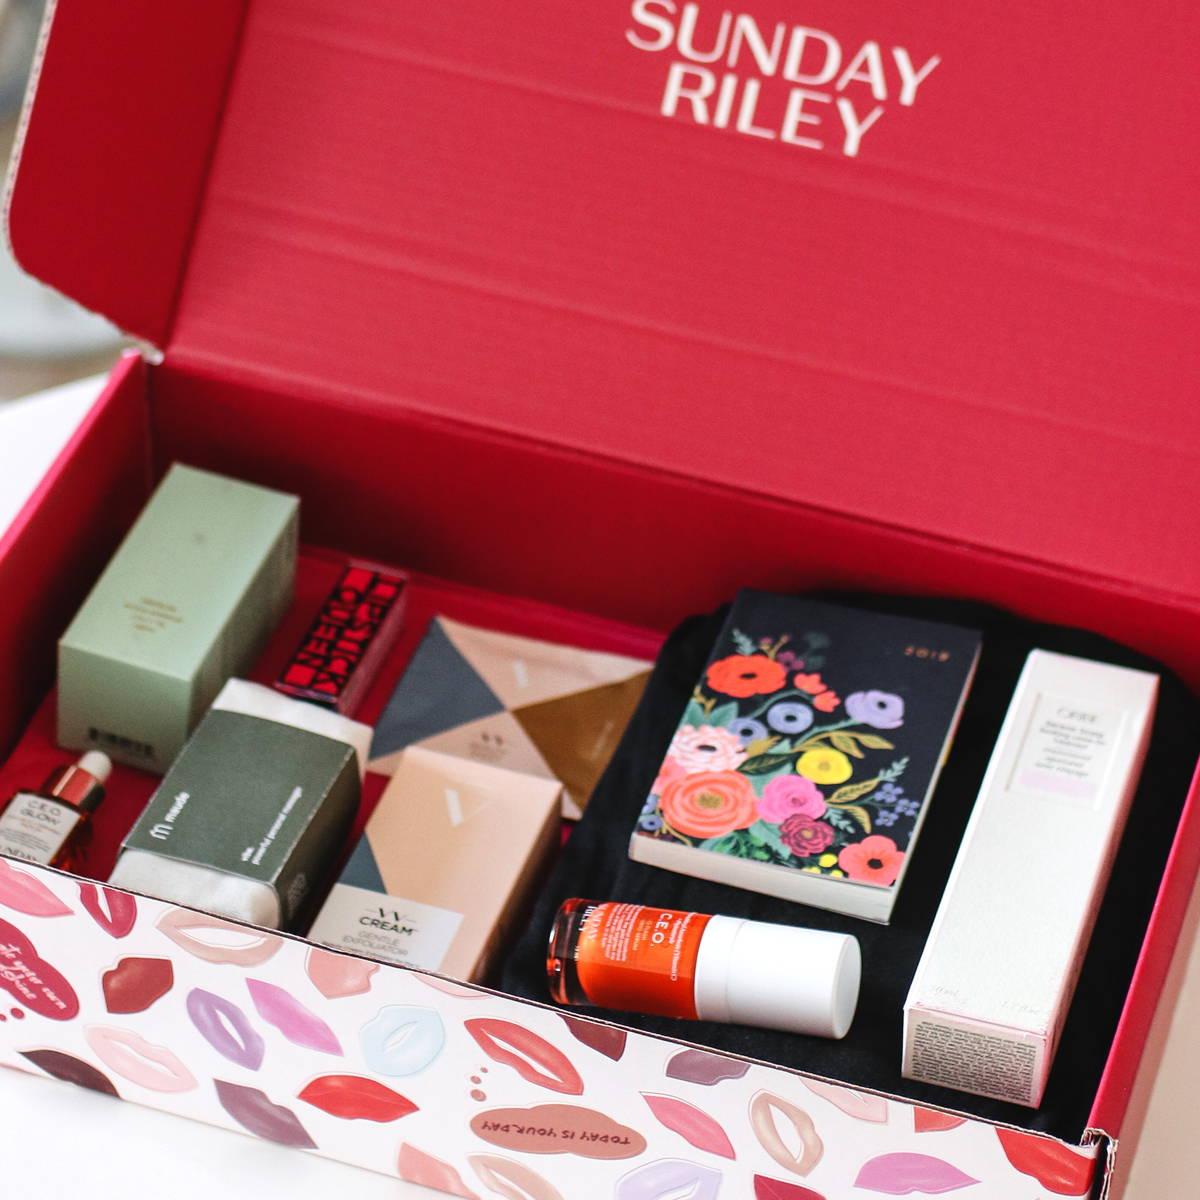 The Love Box subscription box by Sunday Riley, opened exposing the items/ products contained within. Products include, C.E.O. Glow Vitamin C + Turmeric Face Oil 15 ml/0.5 fl oz, Lipstick Queen, and a Maude Vibe personal massager to name a view.